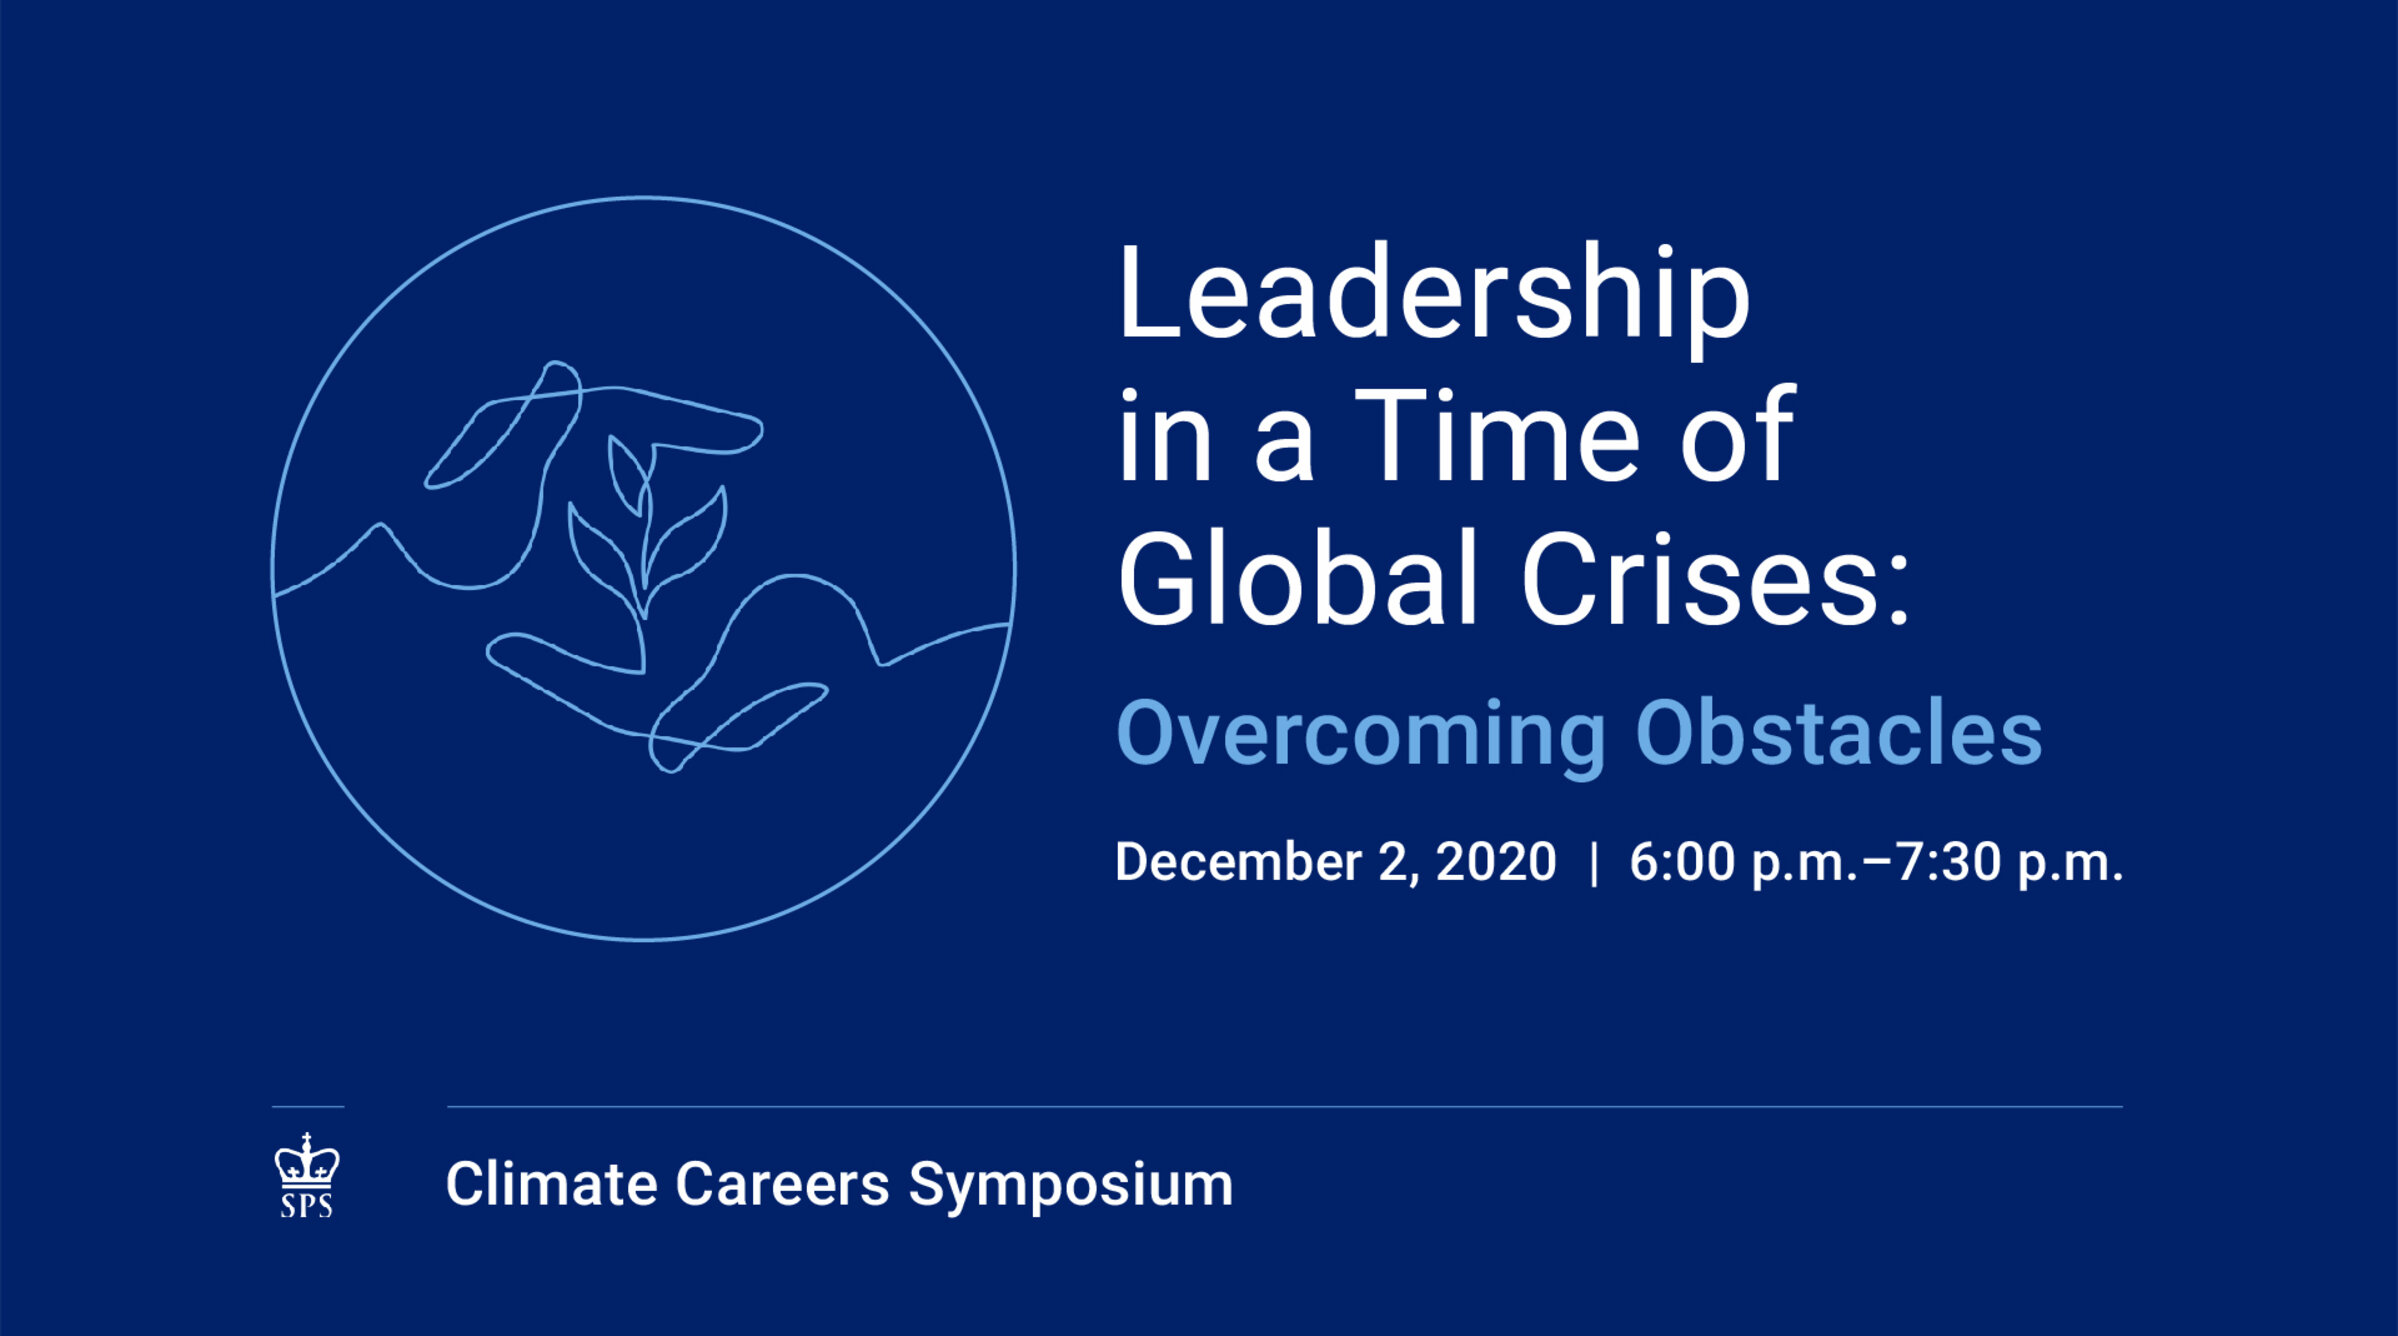 Leadership in a Time of Global Crises: Overcoming Obstacles